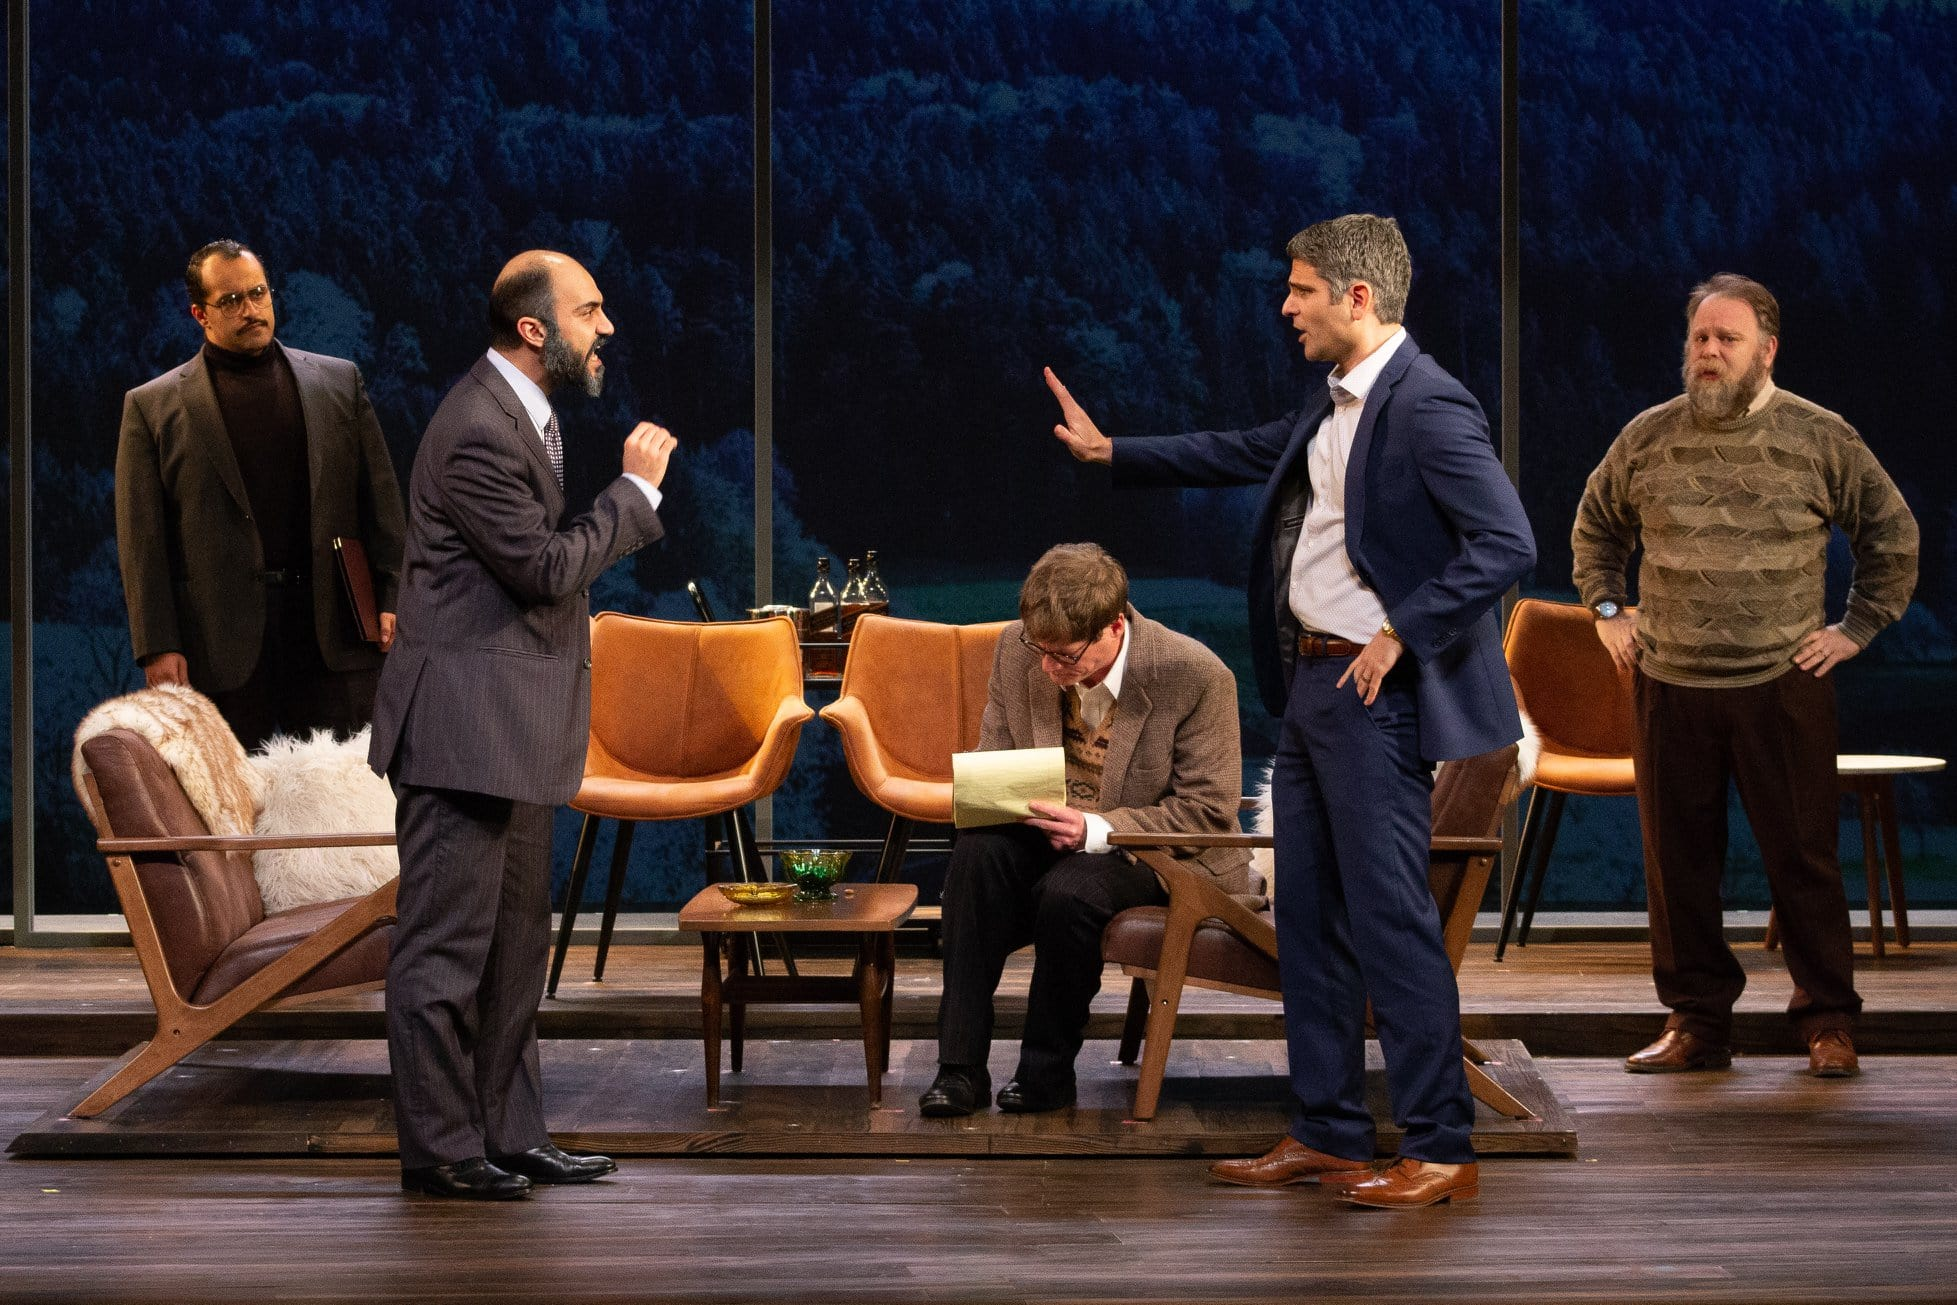 Ahmad Kamal (Hassan Asfour), Maboud Ebrahimzadeh (Ahmed Quire), Gregory Wooddell (Ron Pundak), Juri Henley-Cohn (Uri Savir), and Sasha Olinick (Yair Hirschfeld) in Round House Theatre's current production of 'Oslo.' Photo by Lilly King.